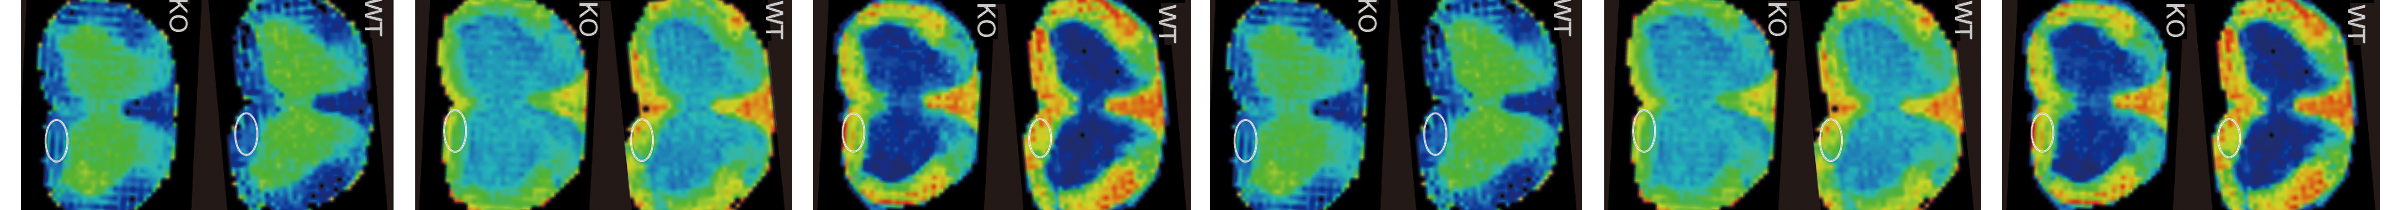 Figure 3. Diffusion tensor imaging in the spinal cords of WT and cerebroside sulfotransferase knock-out (CST-KO) mice.